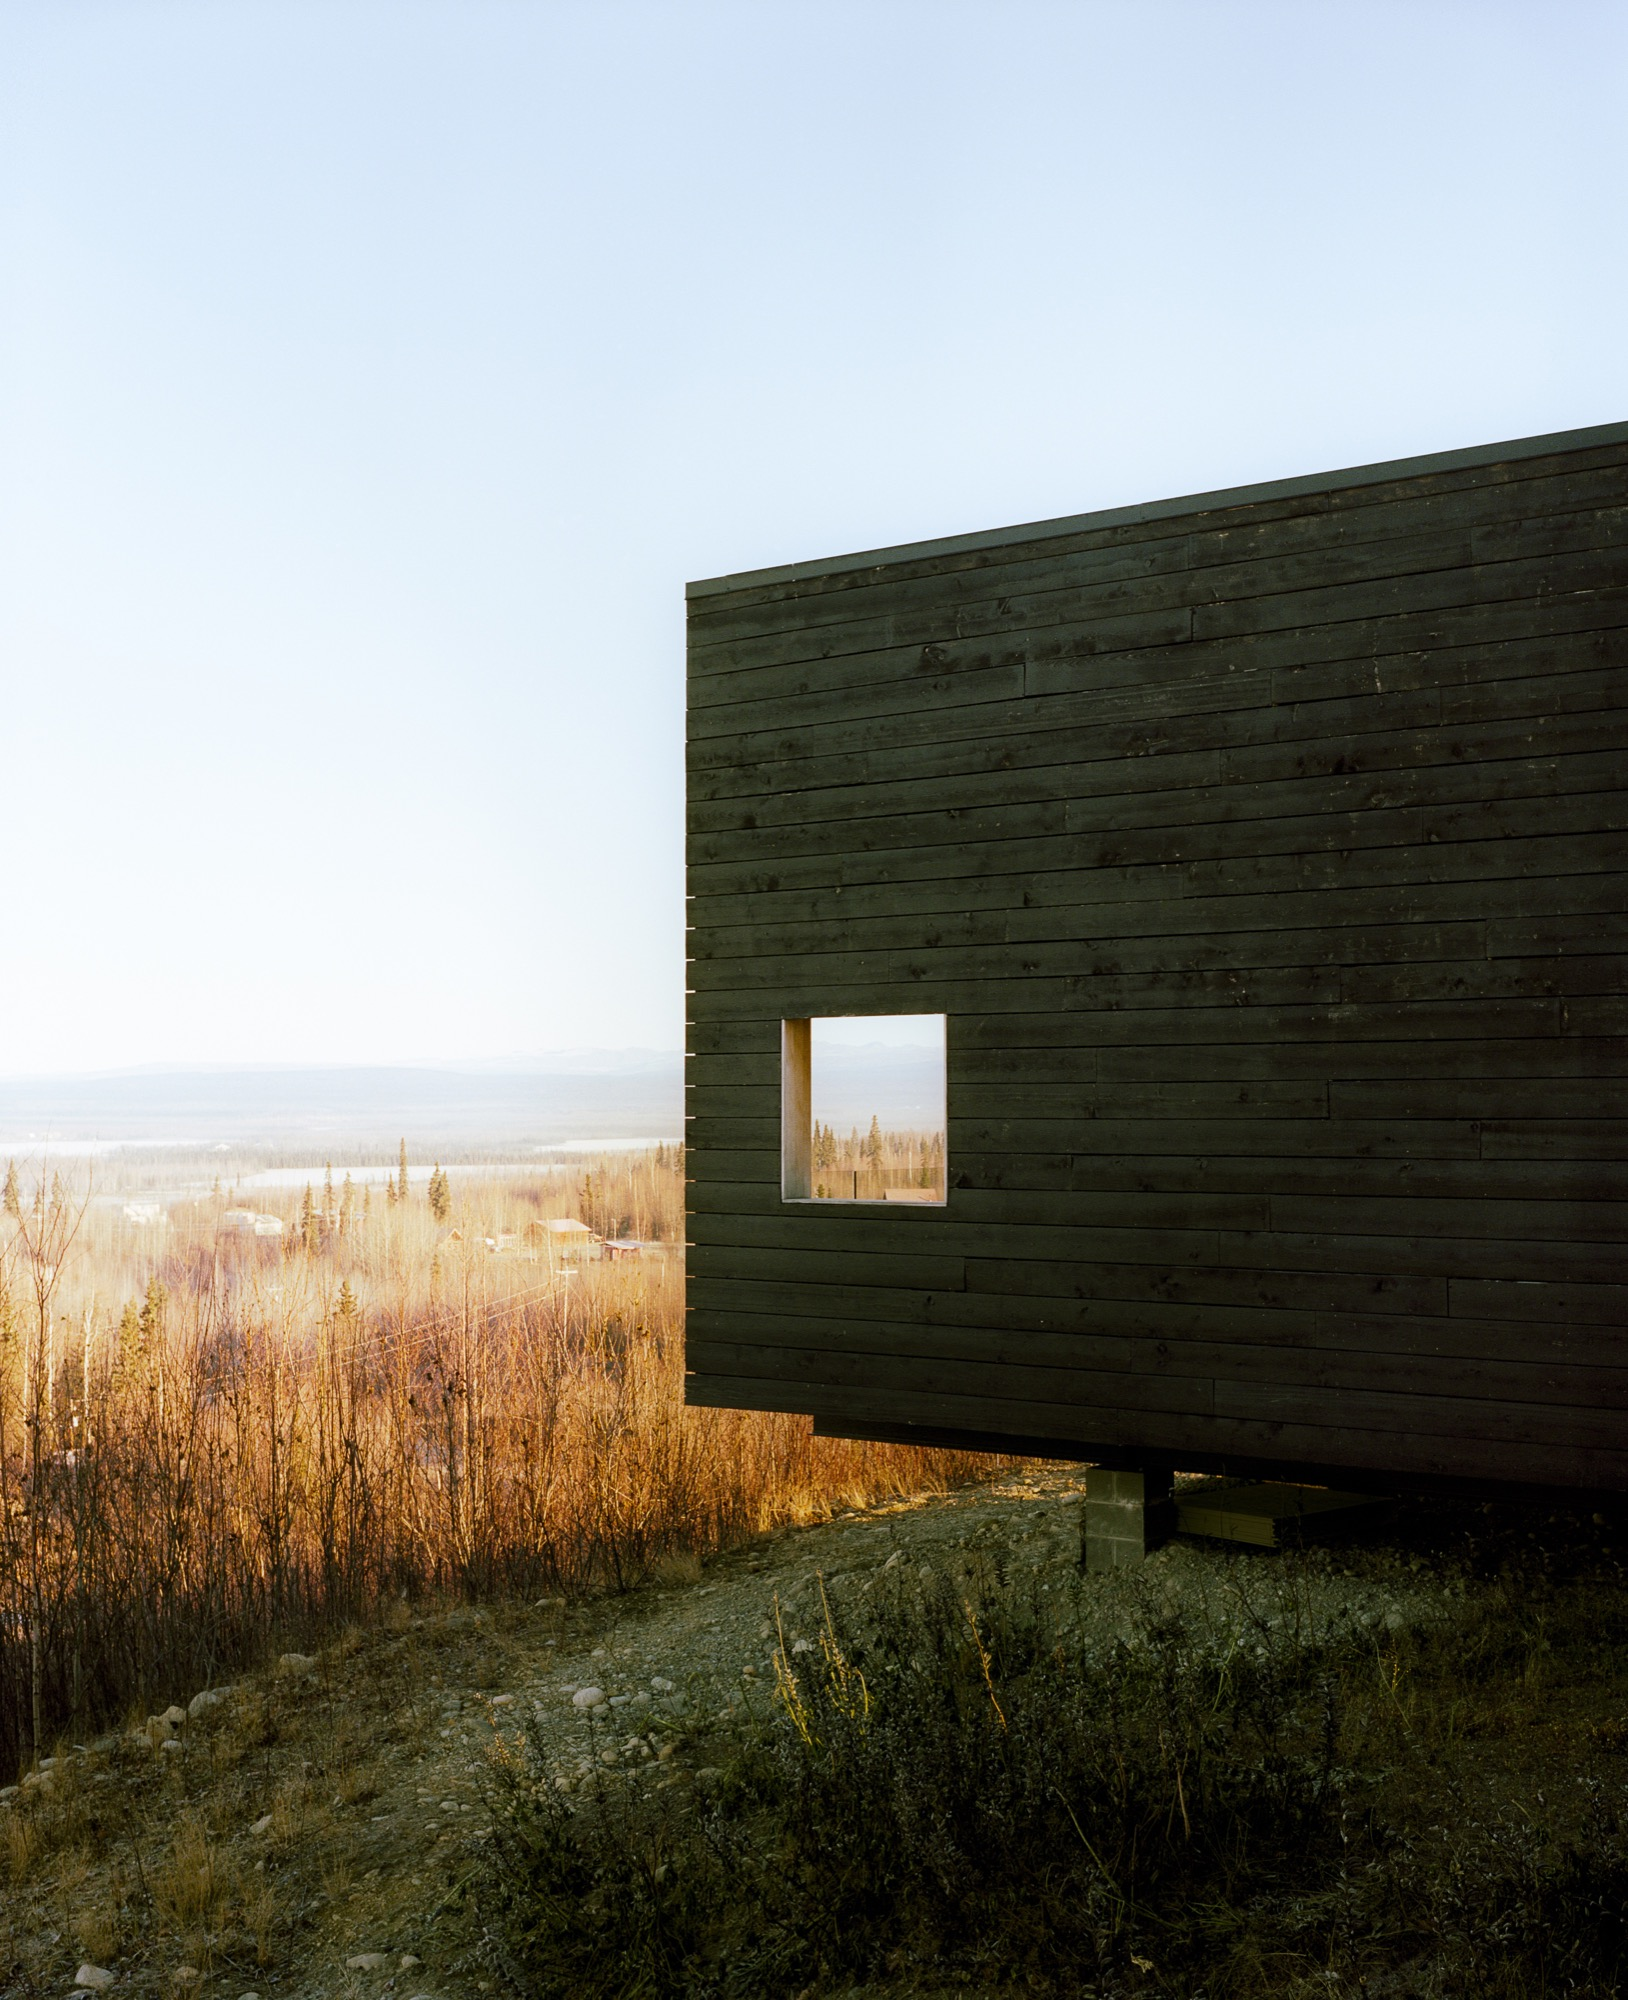 The charred cedar exterior gently basks in the Alaskan sun / Photo by Kamil Bialous